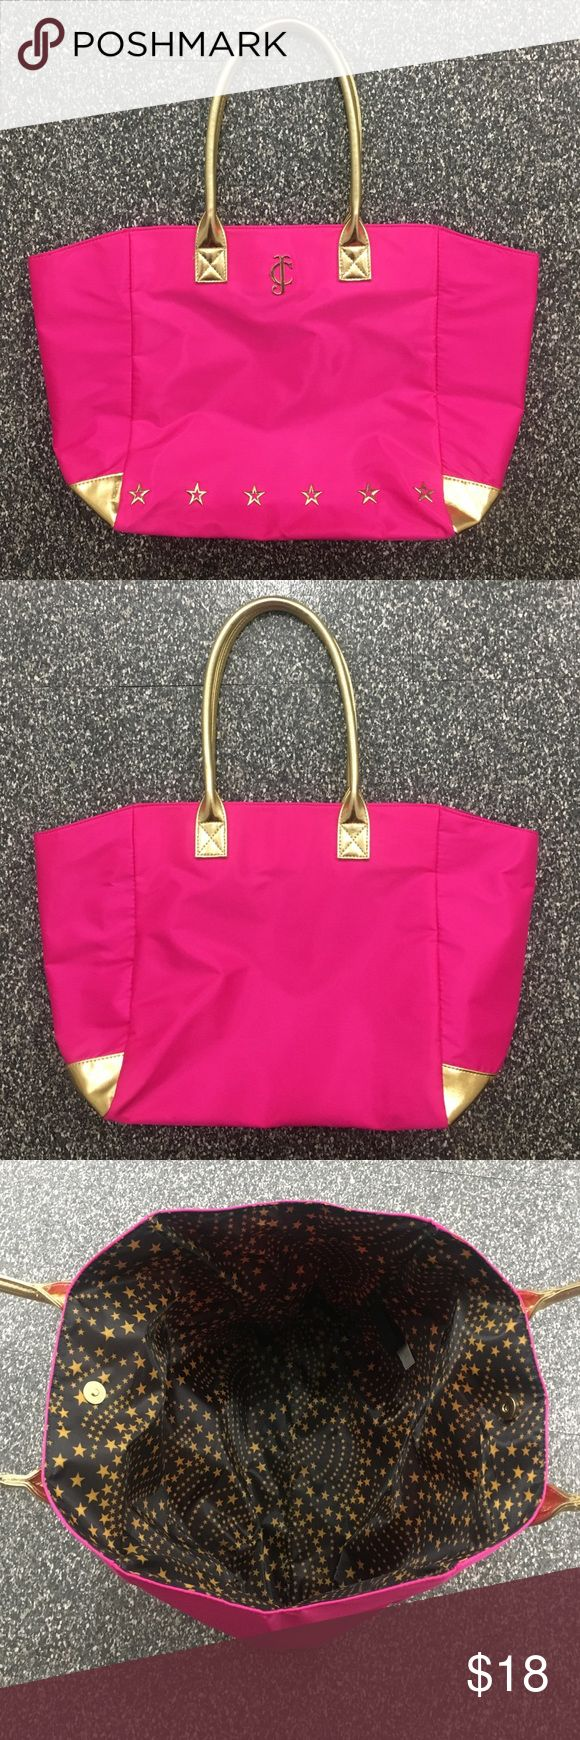 NWOT Juicy Couture Pink And Gold Tote Bag Never used. Juicy Couture Bags Totes